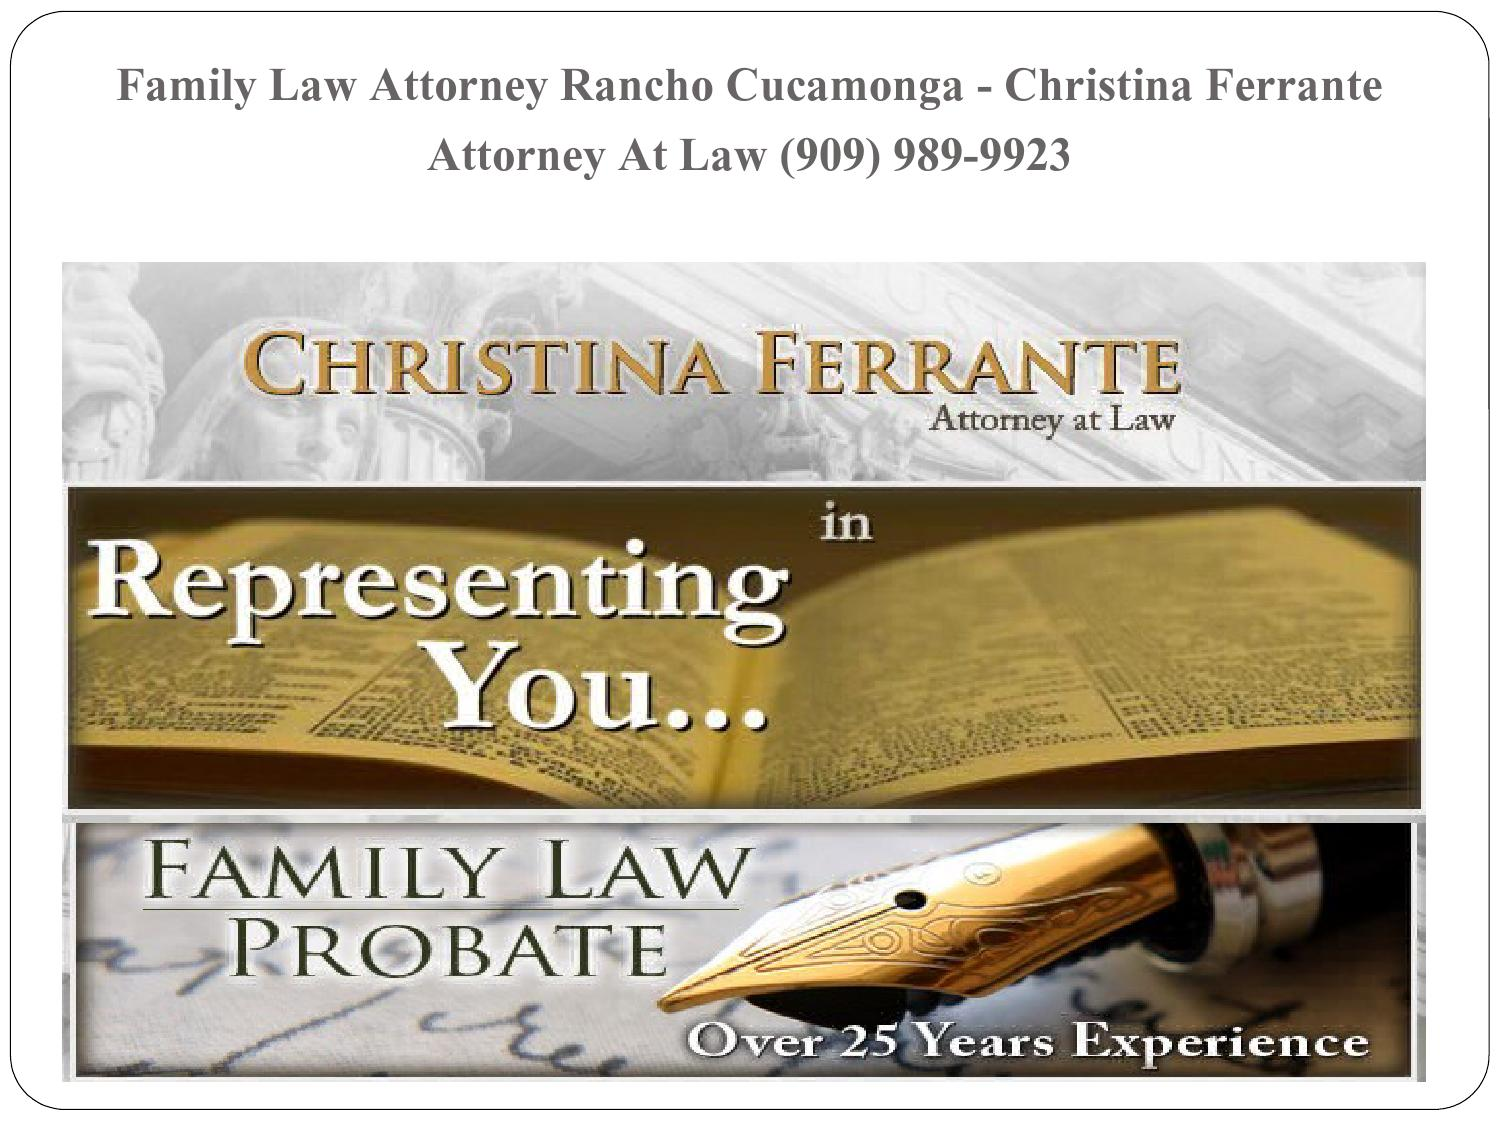 Family Law Attorney Rancho Cucamonga  Christina Ferrante. Lawsuit Funding Florida Types Of Granola Bars. Nurse Informatics Programs Mocasins For Women. Best Interstate Moving Companies Reviews. Frontline Home Security Plumber Boca Raton Fl. Instant Approval Car Loans Holt Dental Supply. Dodge Town And Country 2013 North The Domain. Associate Degree In Computer Science. Small Business Loan Apply Online